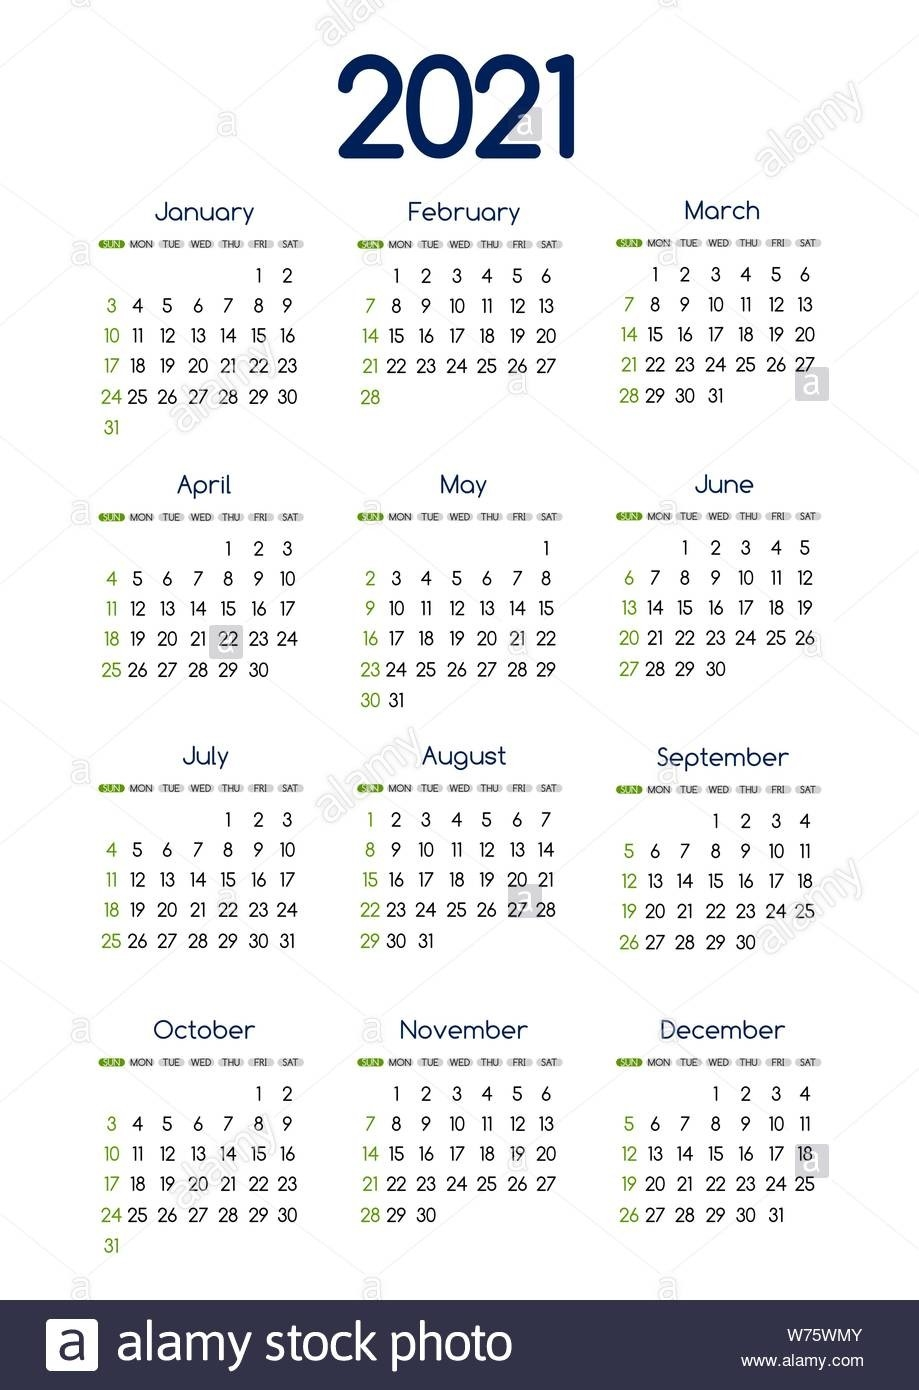 Calendar 2021 High Resolution Stock Photography And Images  Printable 2021 Year Grid Style